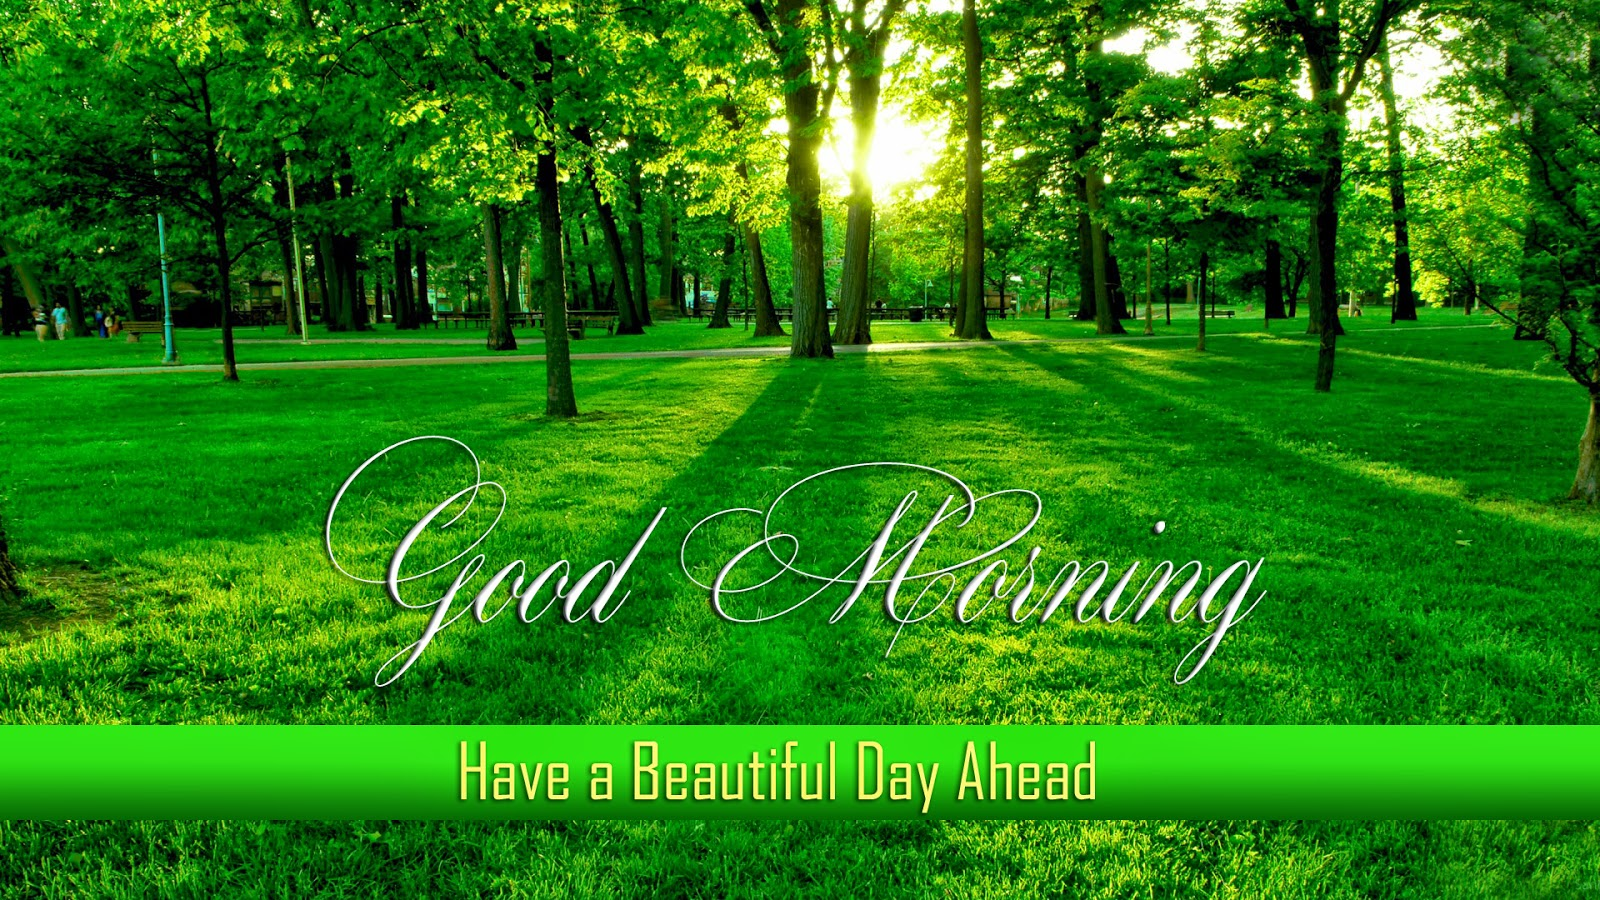 Special Images For Good Morning Good Morning Images For Family